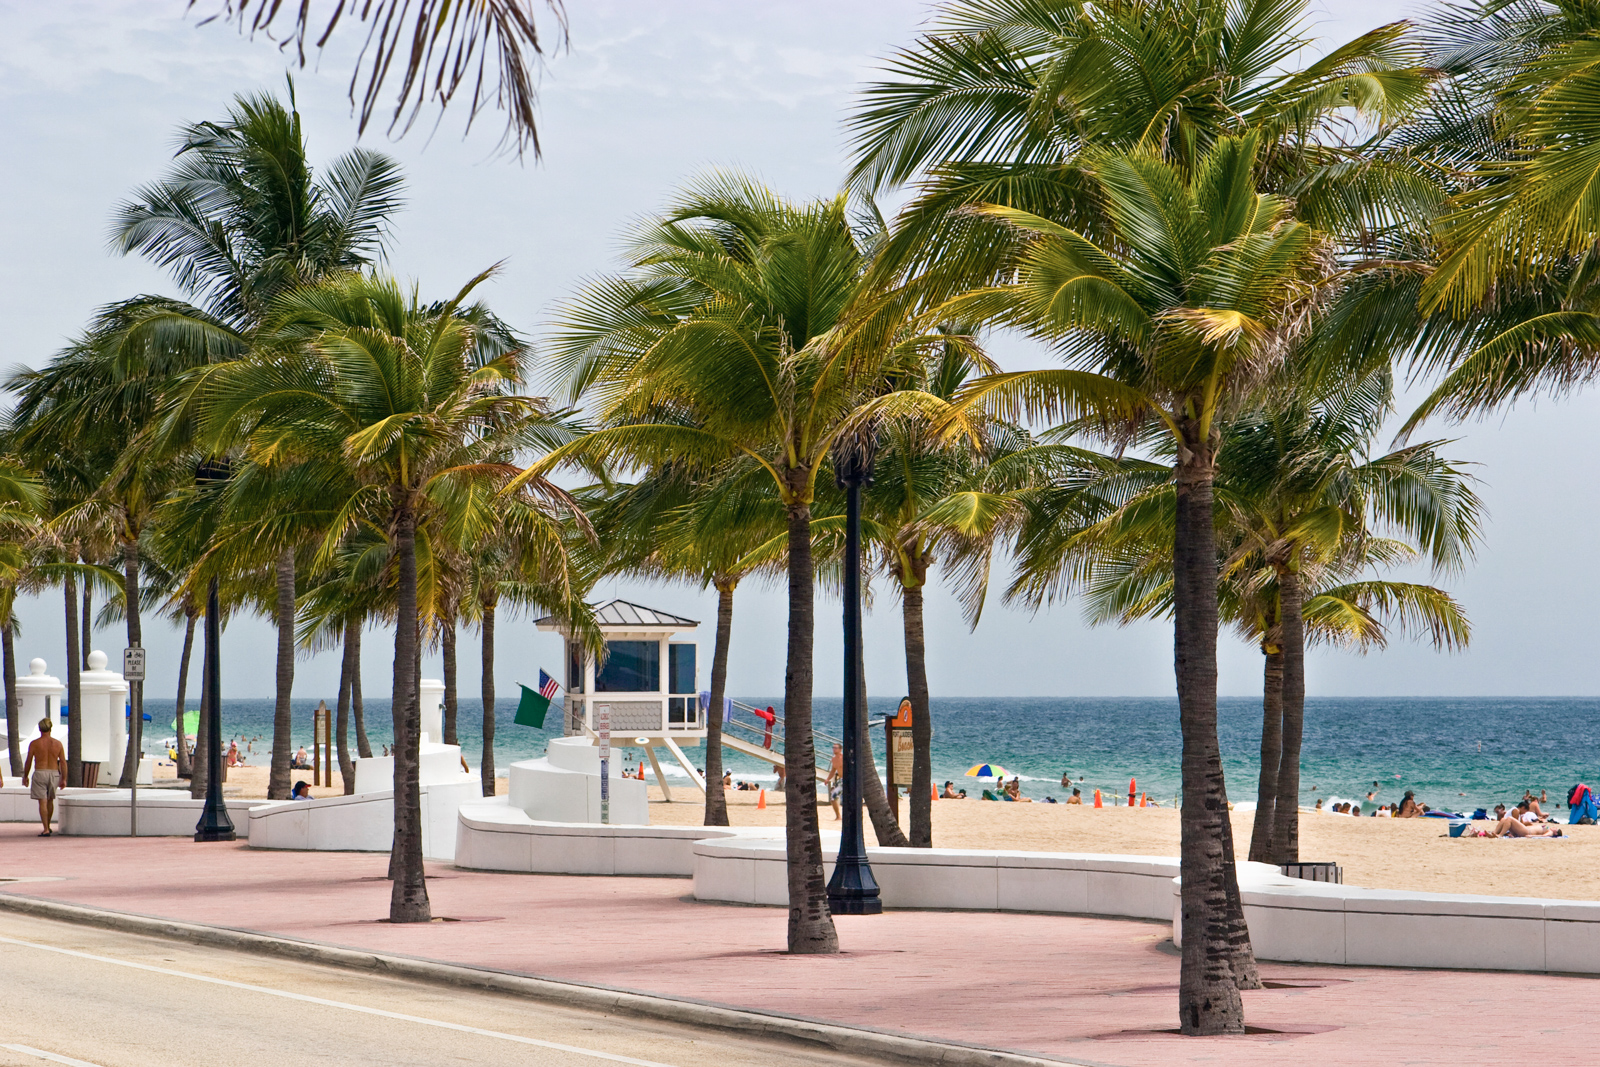 Things to do in Fort Lauderdale beach. Visit the top Fort Lauderdale attractions from the riverwalk to the historic museums.